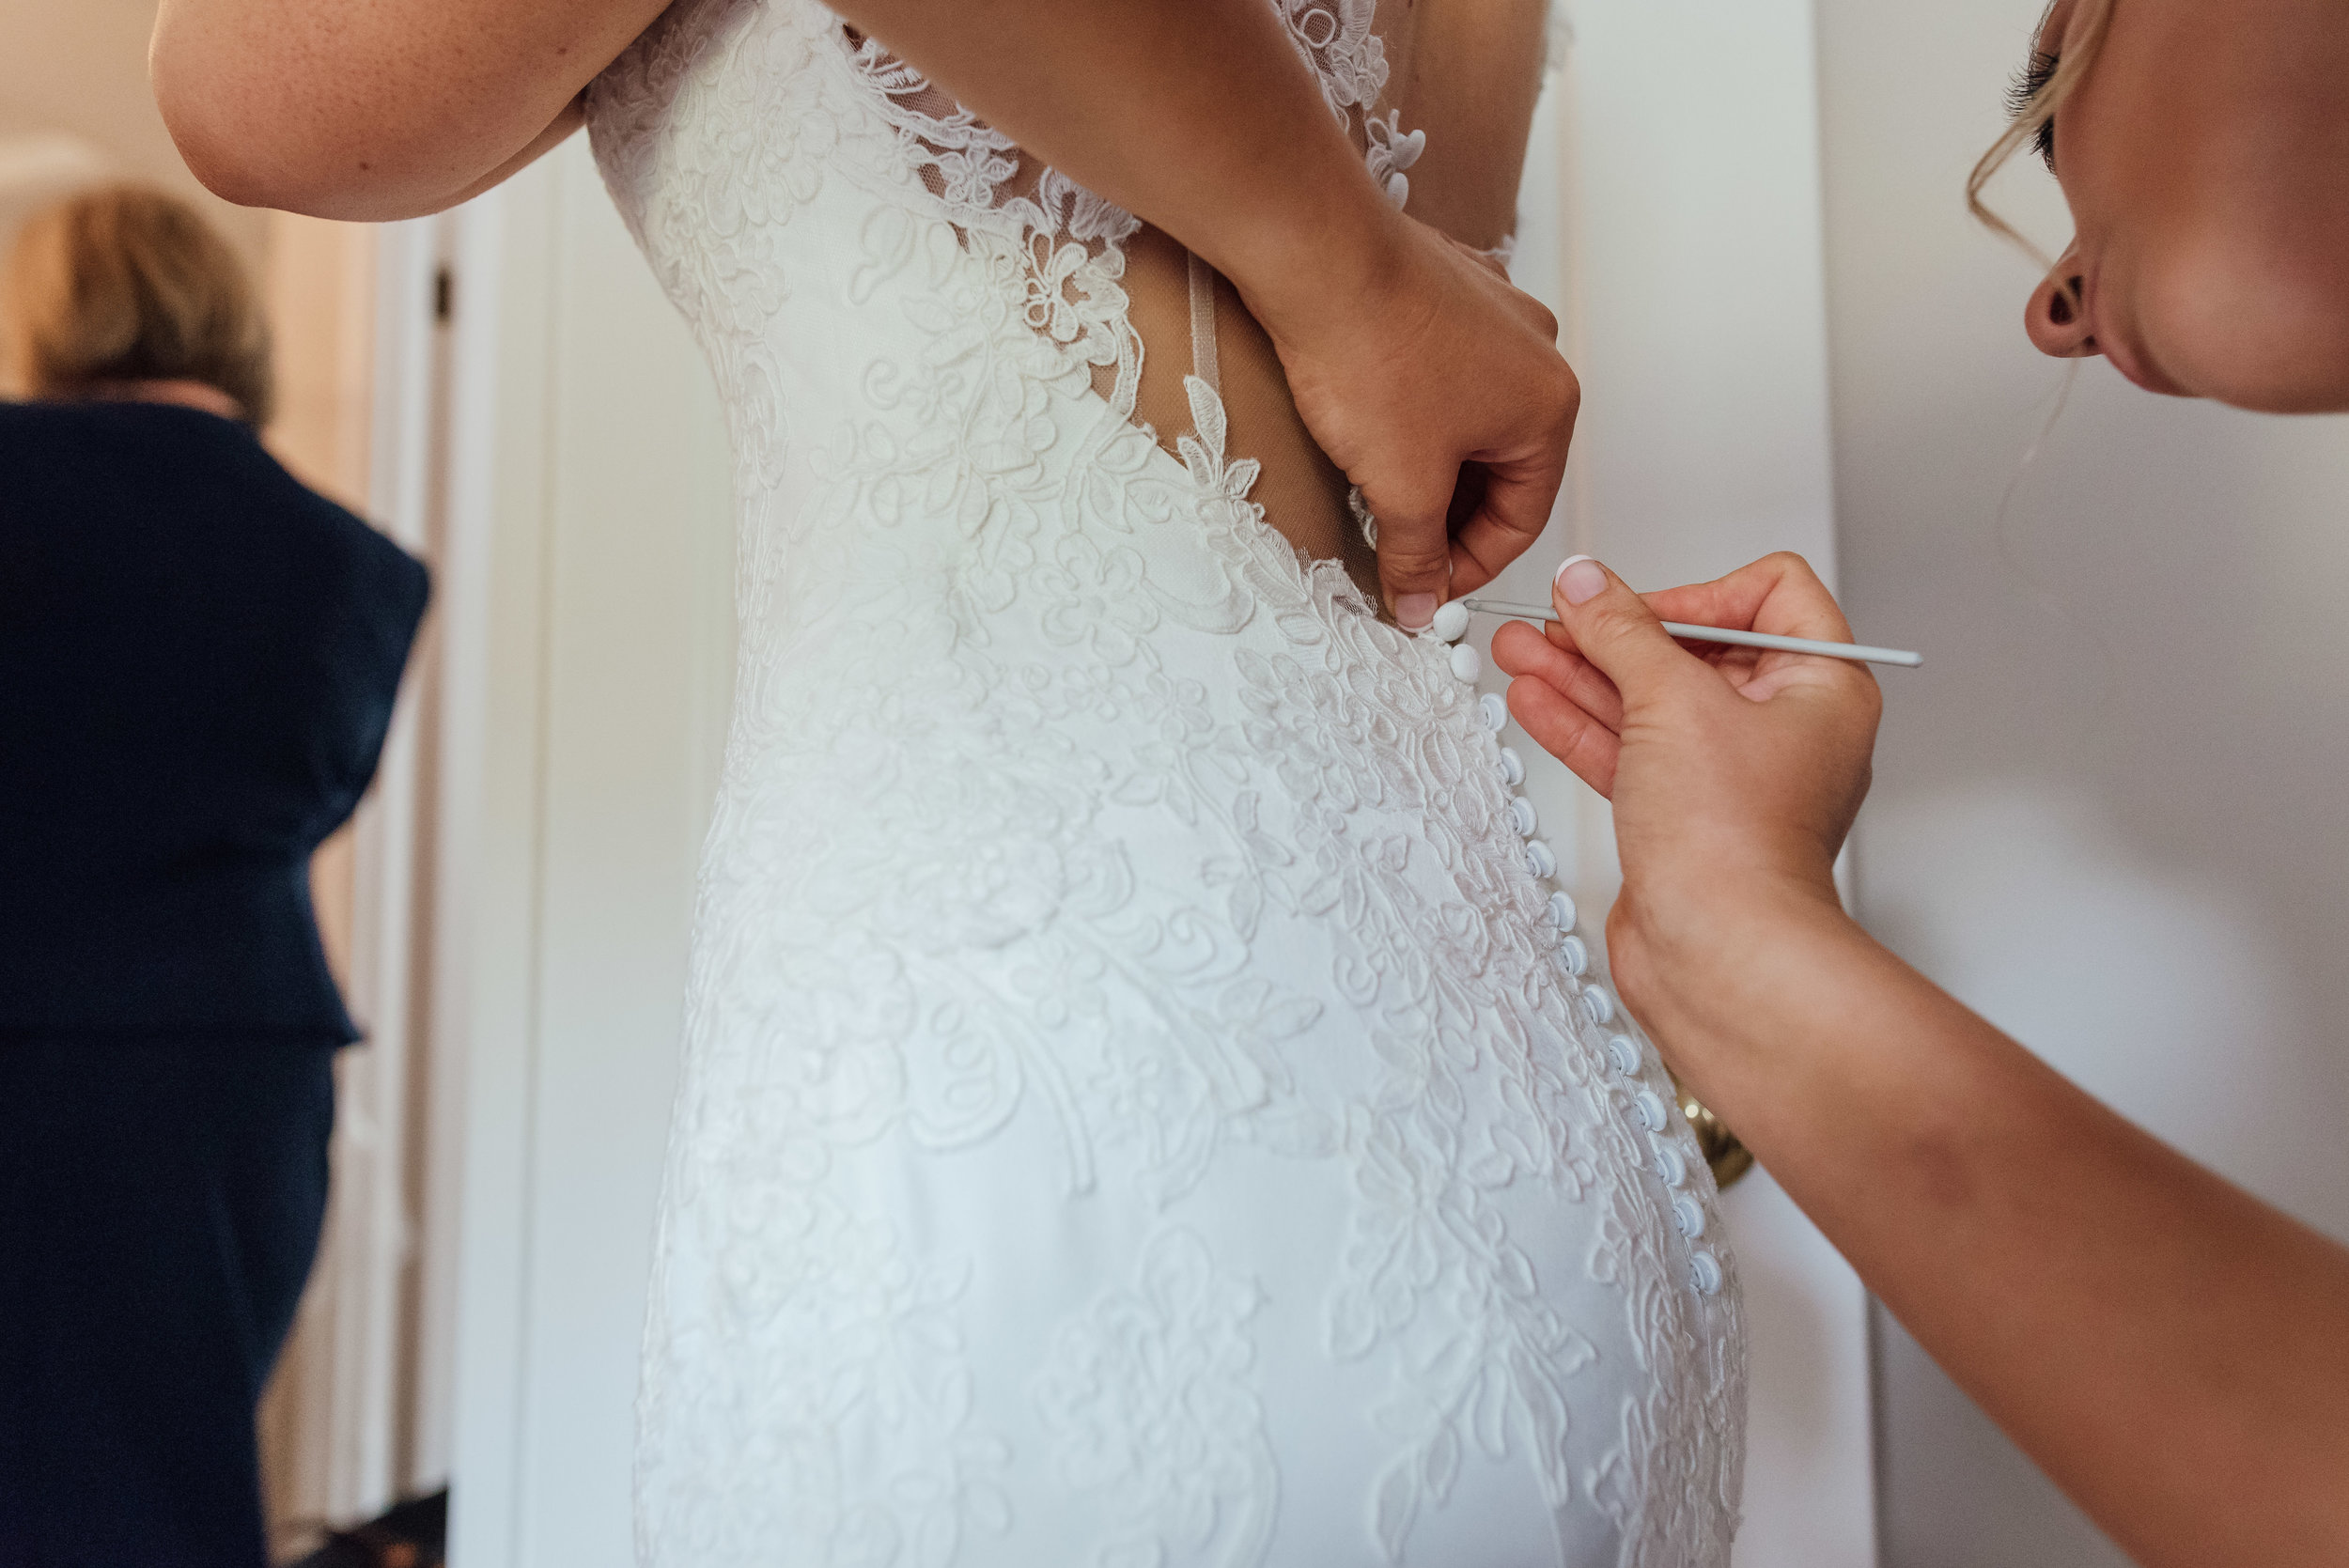 wedding-dress-photo / Amy-james-photography / Hampshire-wedding-photographer-hampshire